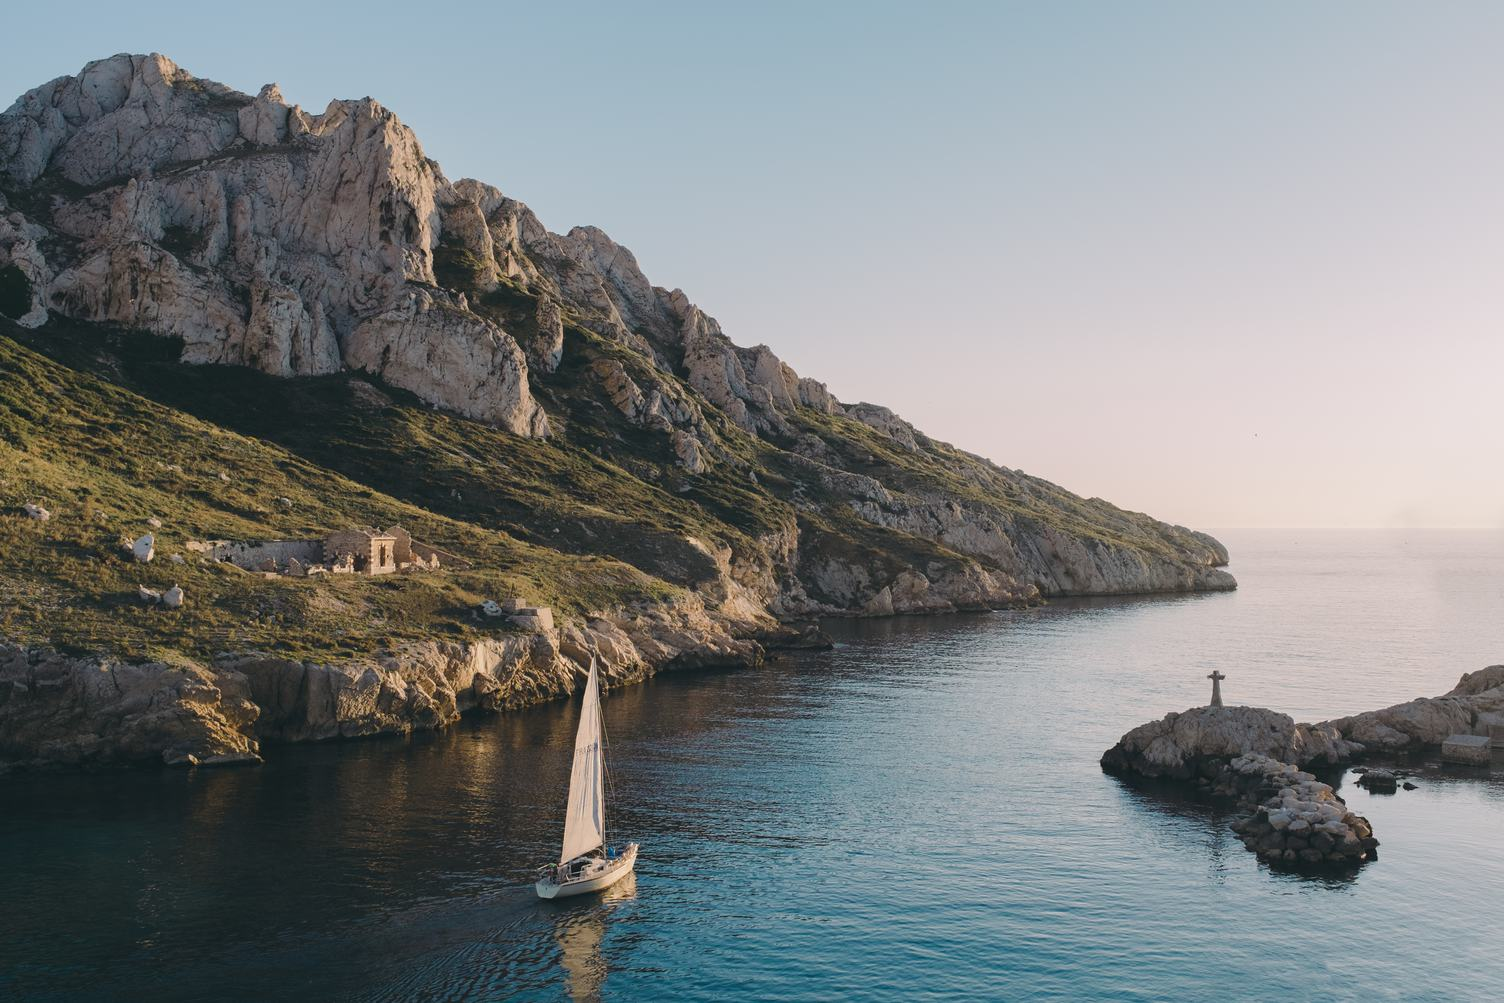 Sailing Boat In The Rocky Bay